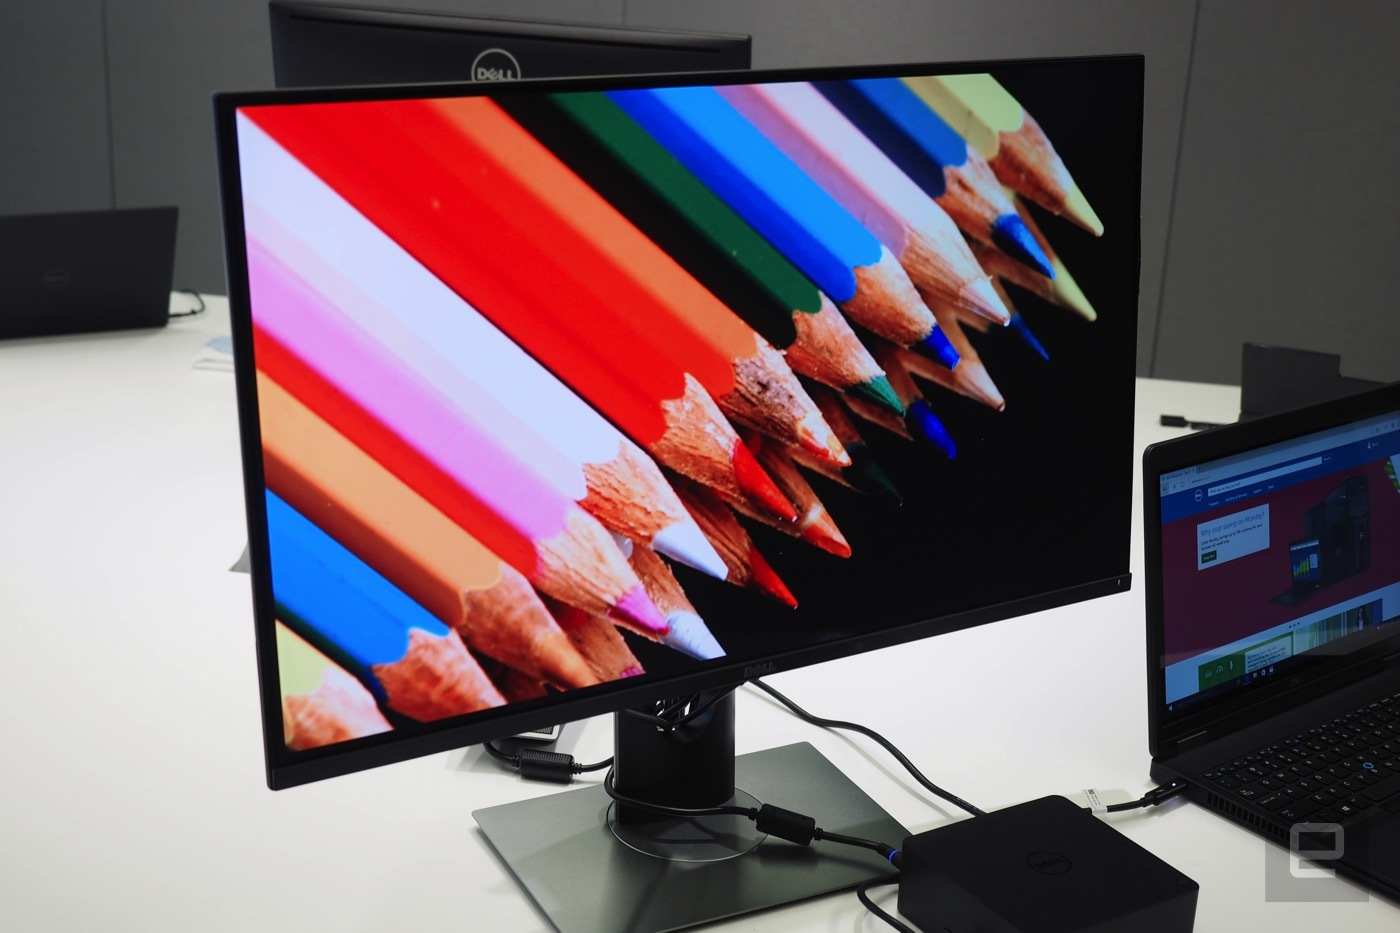 dell panel oled 4k ces 2016 3